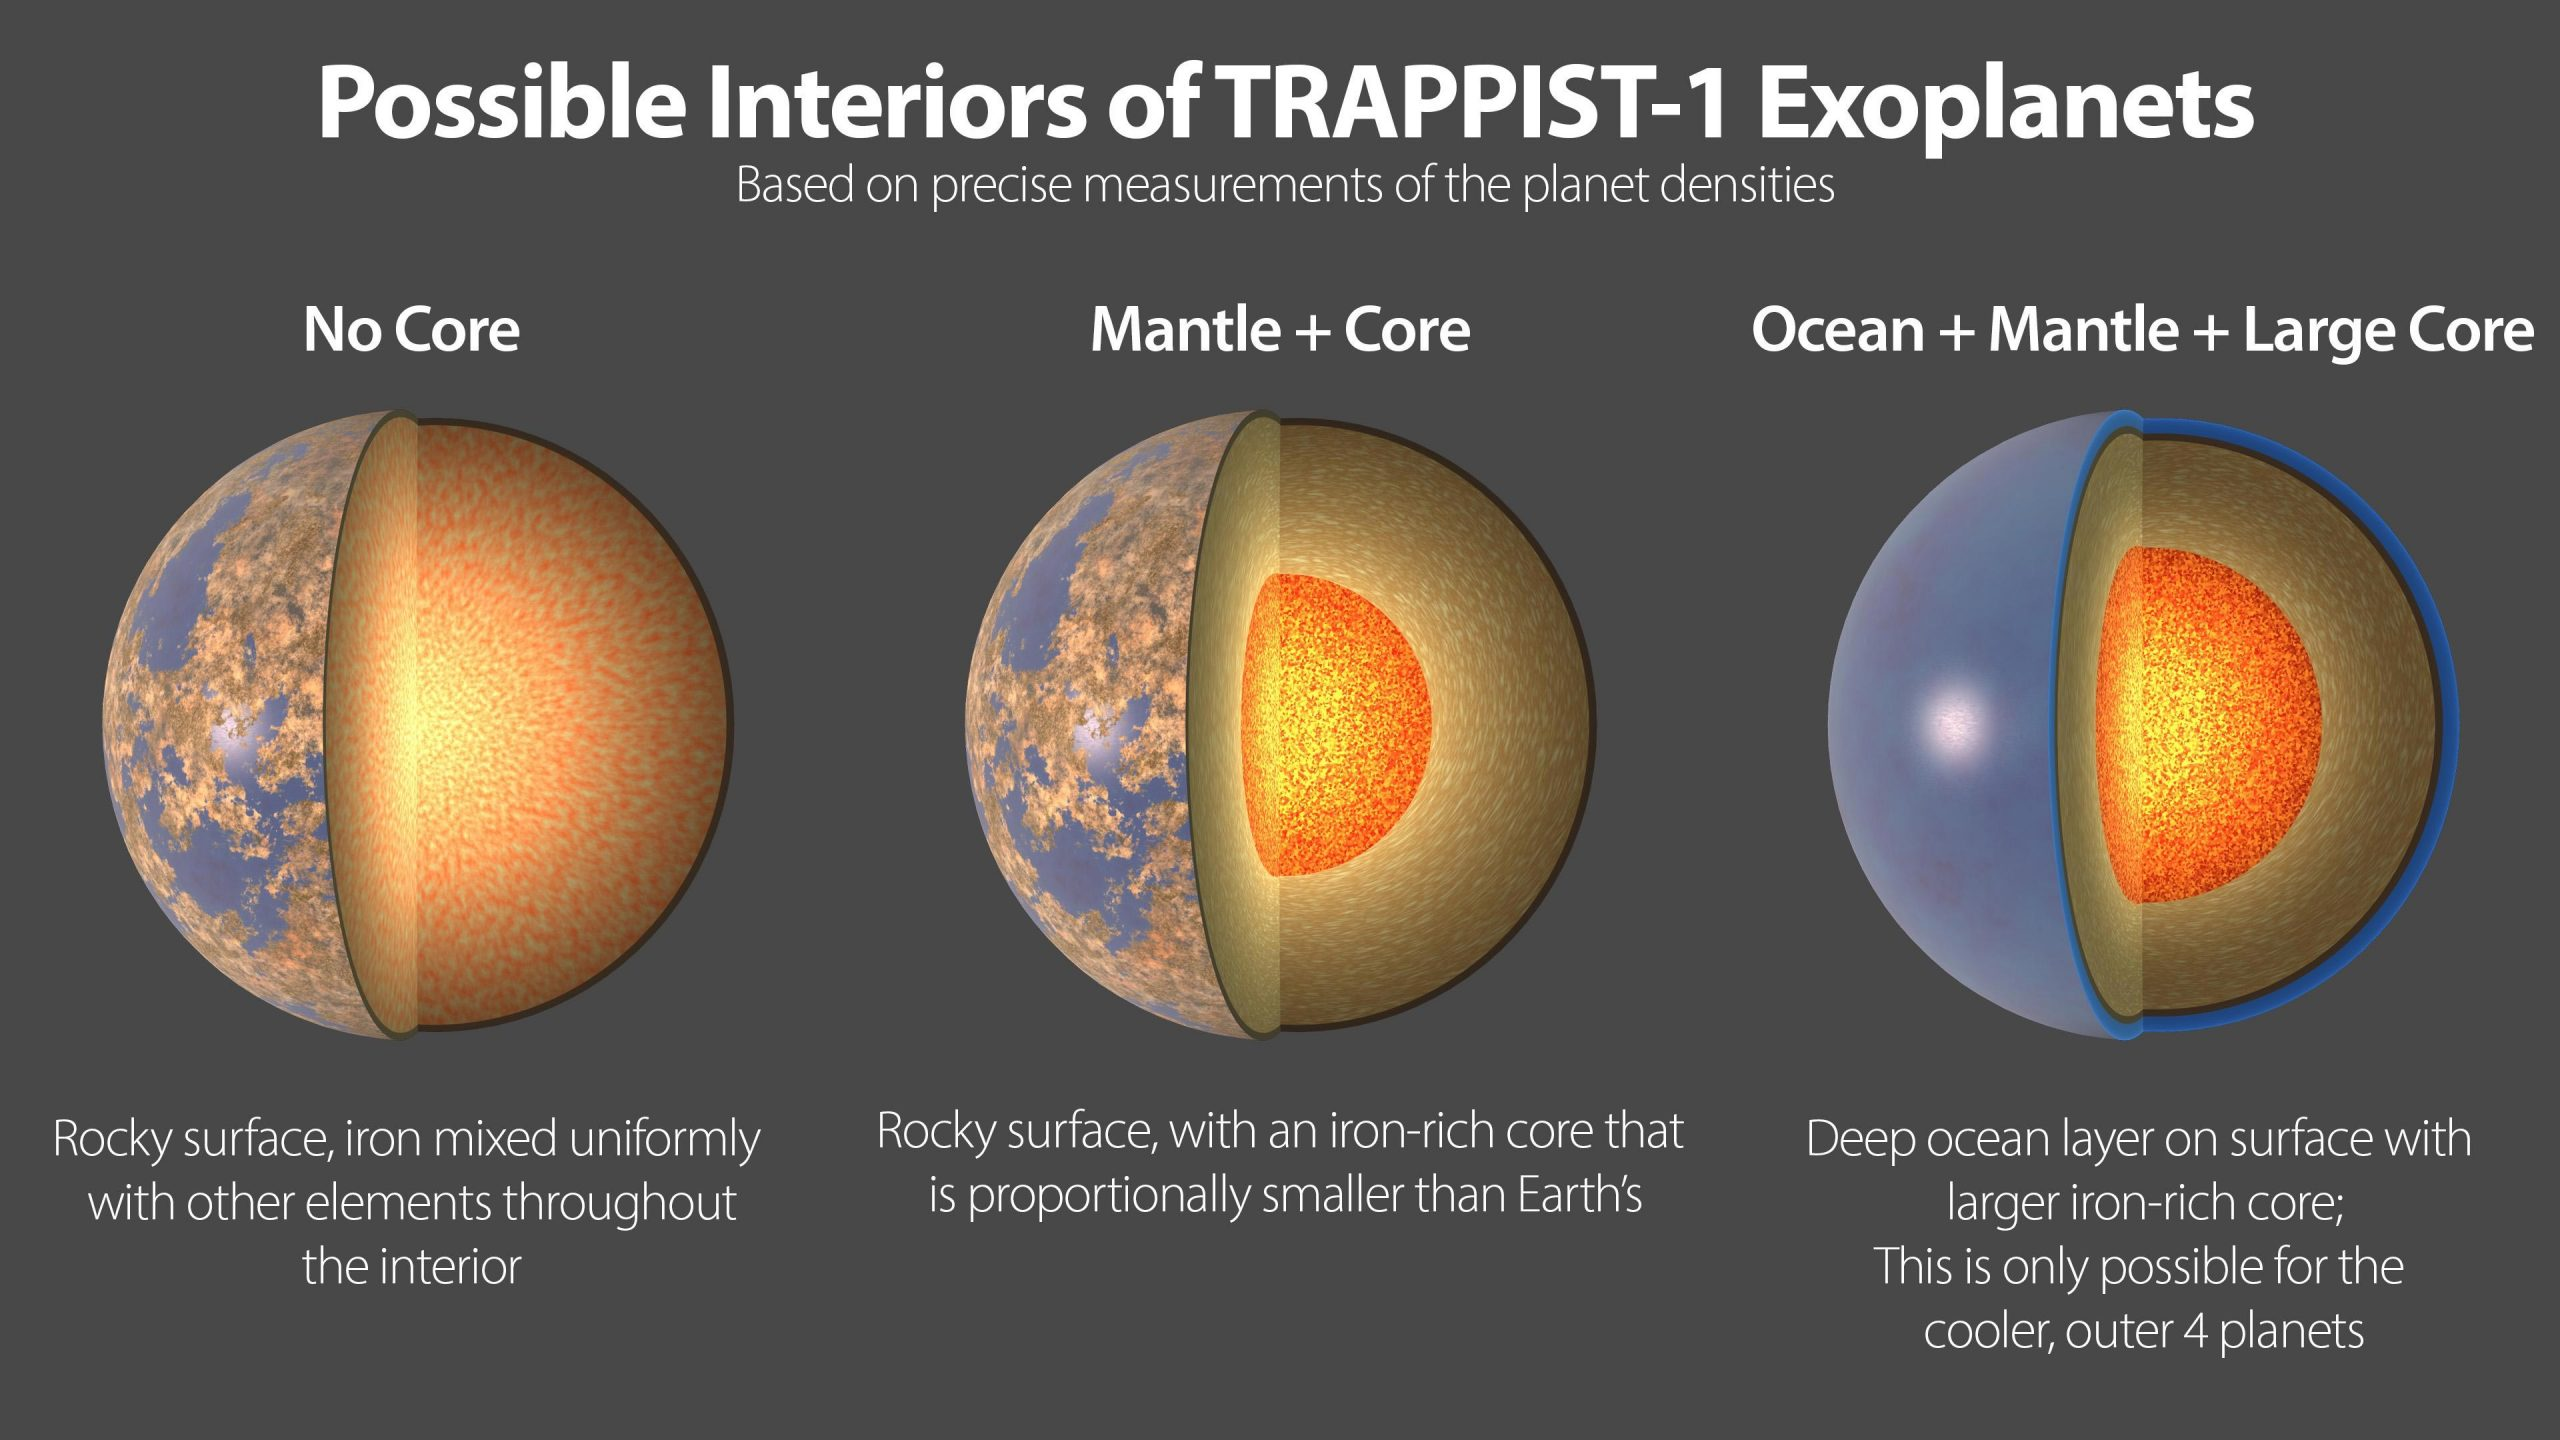 Astronomers Uncover New Details About the Remarkable Seven Rocky Planets of TRAPPIST-1